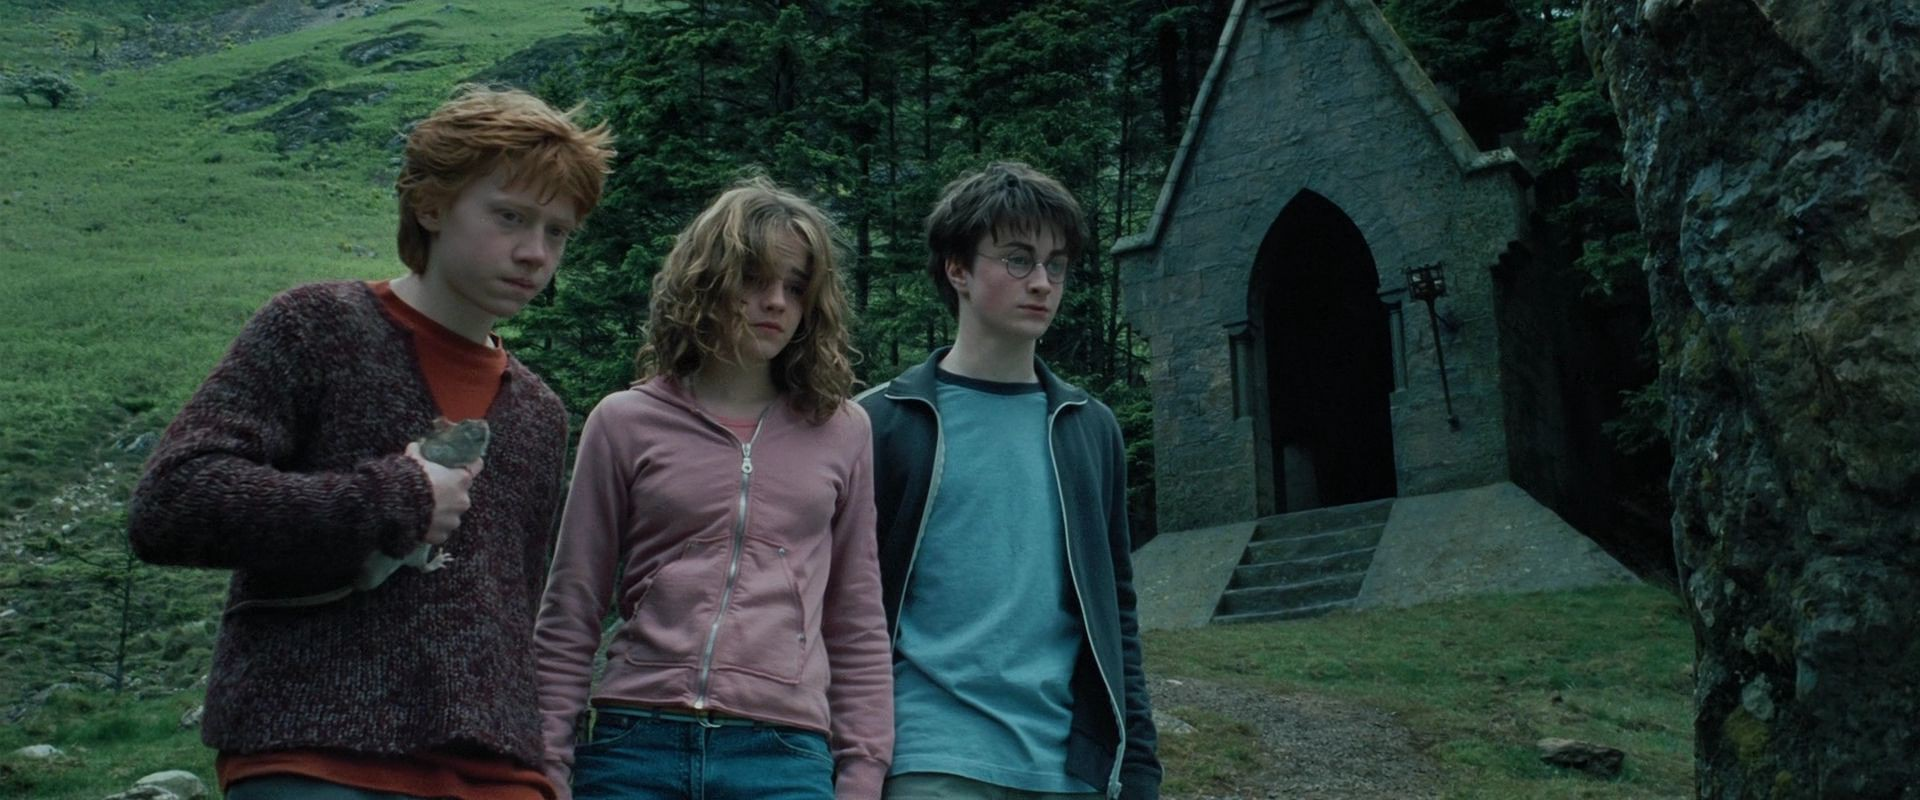 Ron, Hermione and Harry aren't kidding us | © Warner Bros